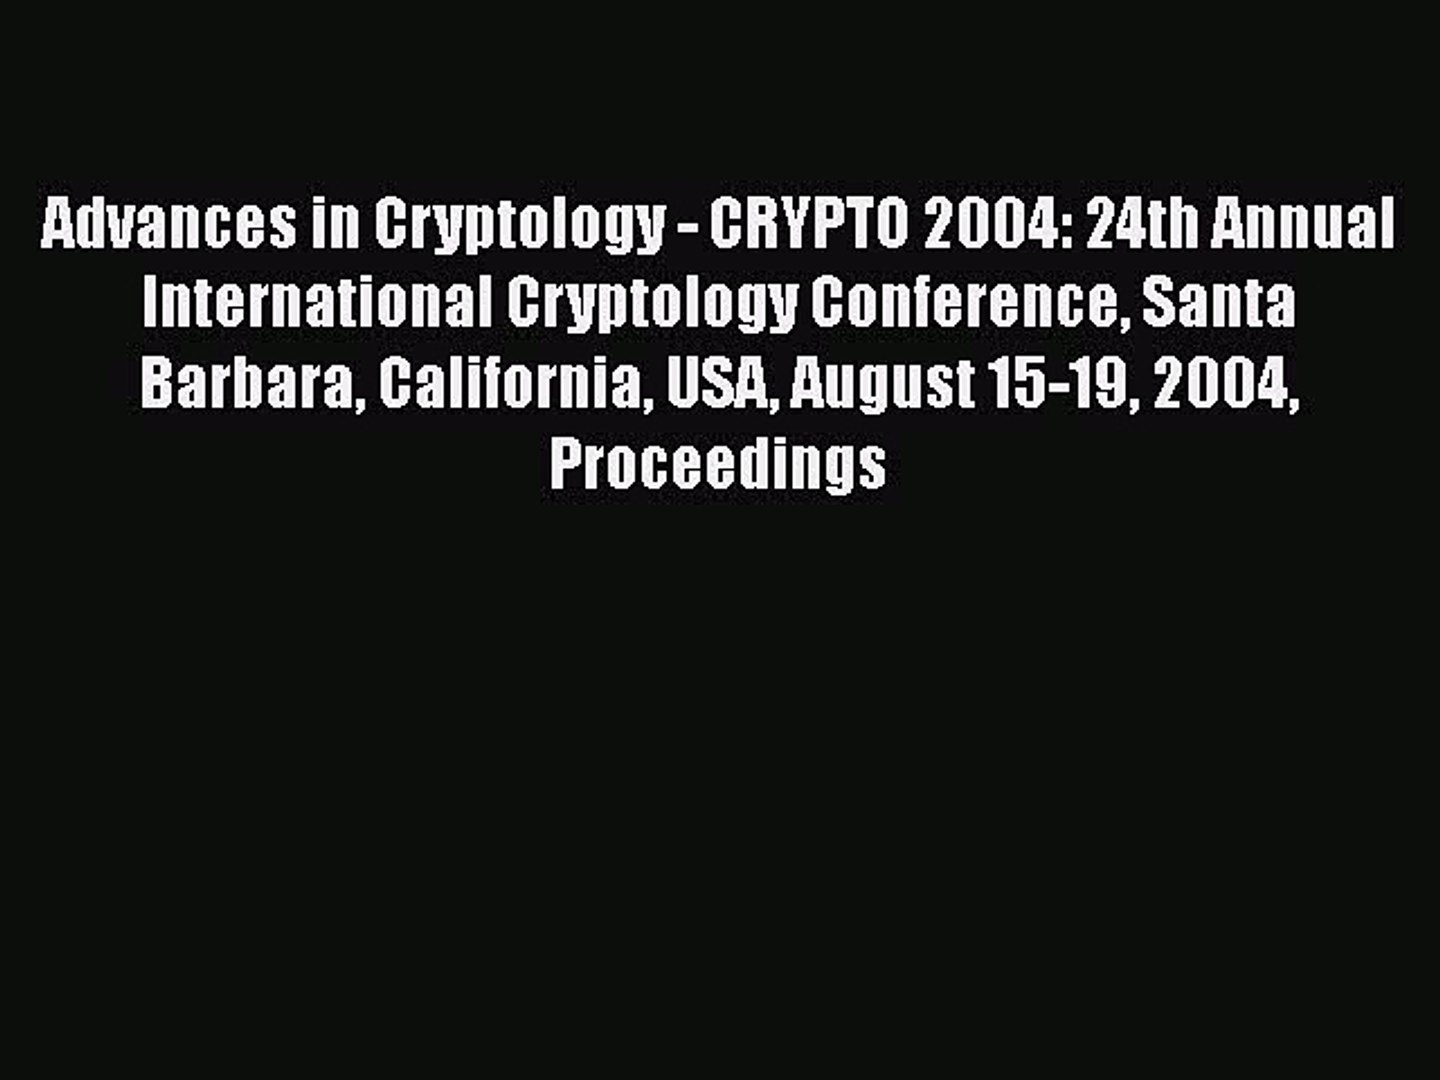 Read Advances in Cryptology - CRYPTO 2004: 24th Annual International Cryptology Conference